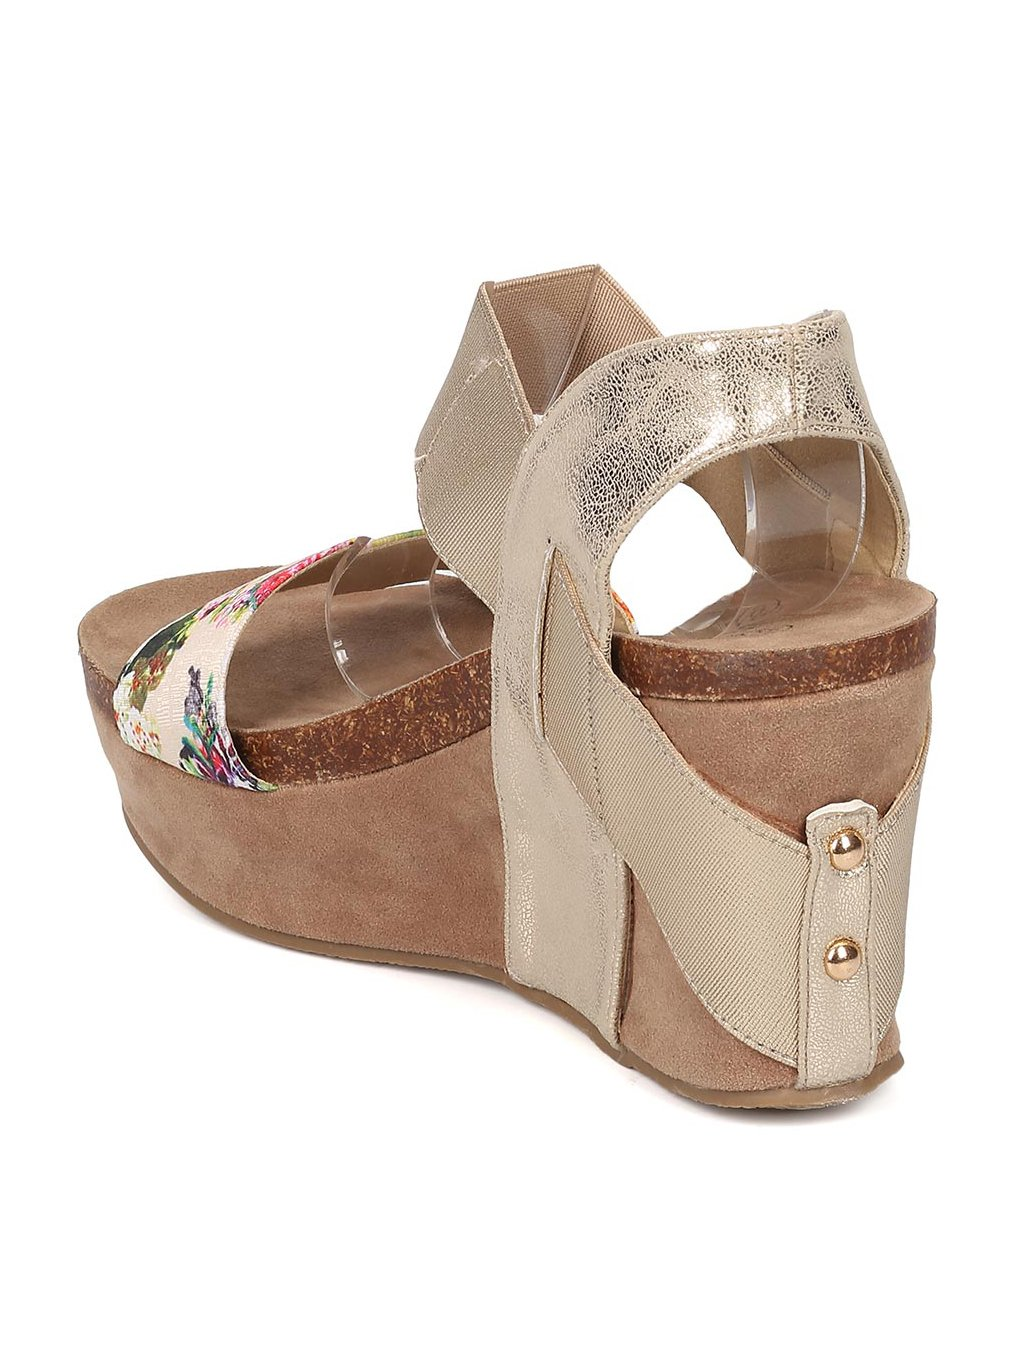 Heartthentic Floral Tricia-10 Women Mixed Media Floral Heartthentic Platform Wedge Sandal HA98 B072PV92G1 6 M US|Light Gold Mix Media 2969e9